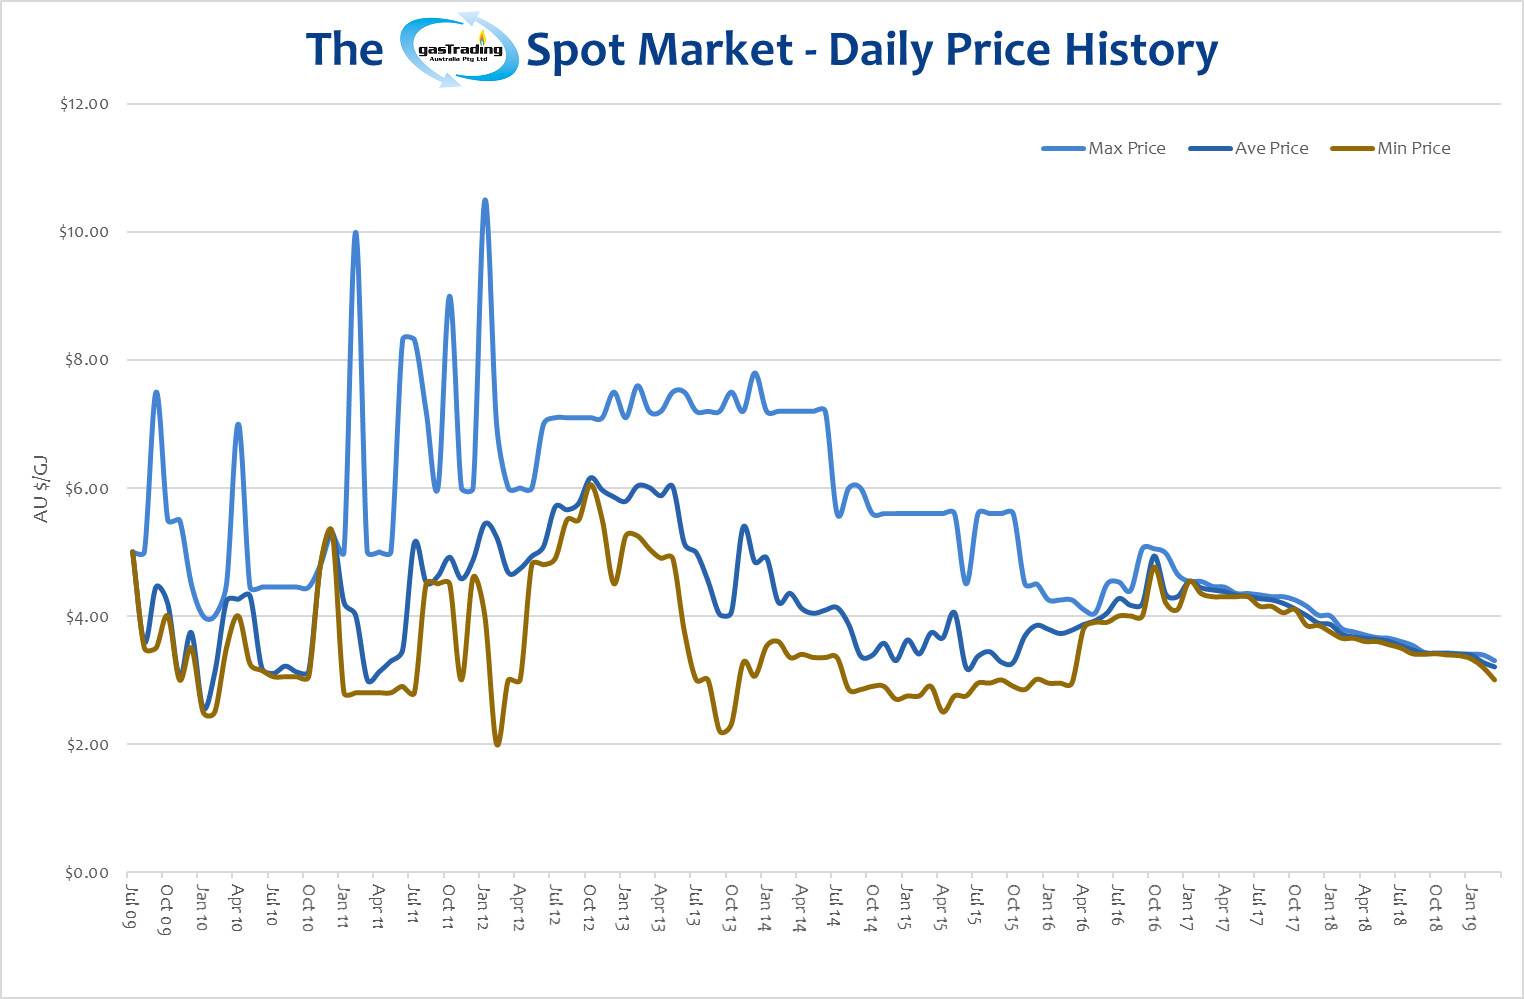 -Daily-Price-History-March19